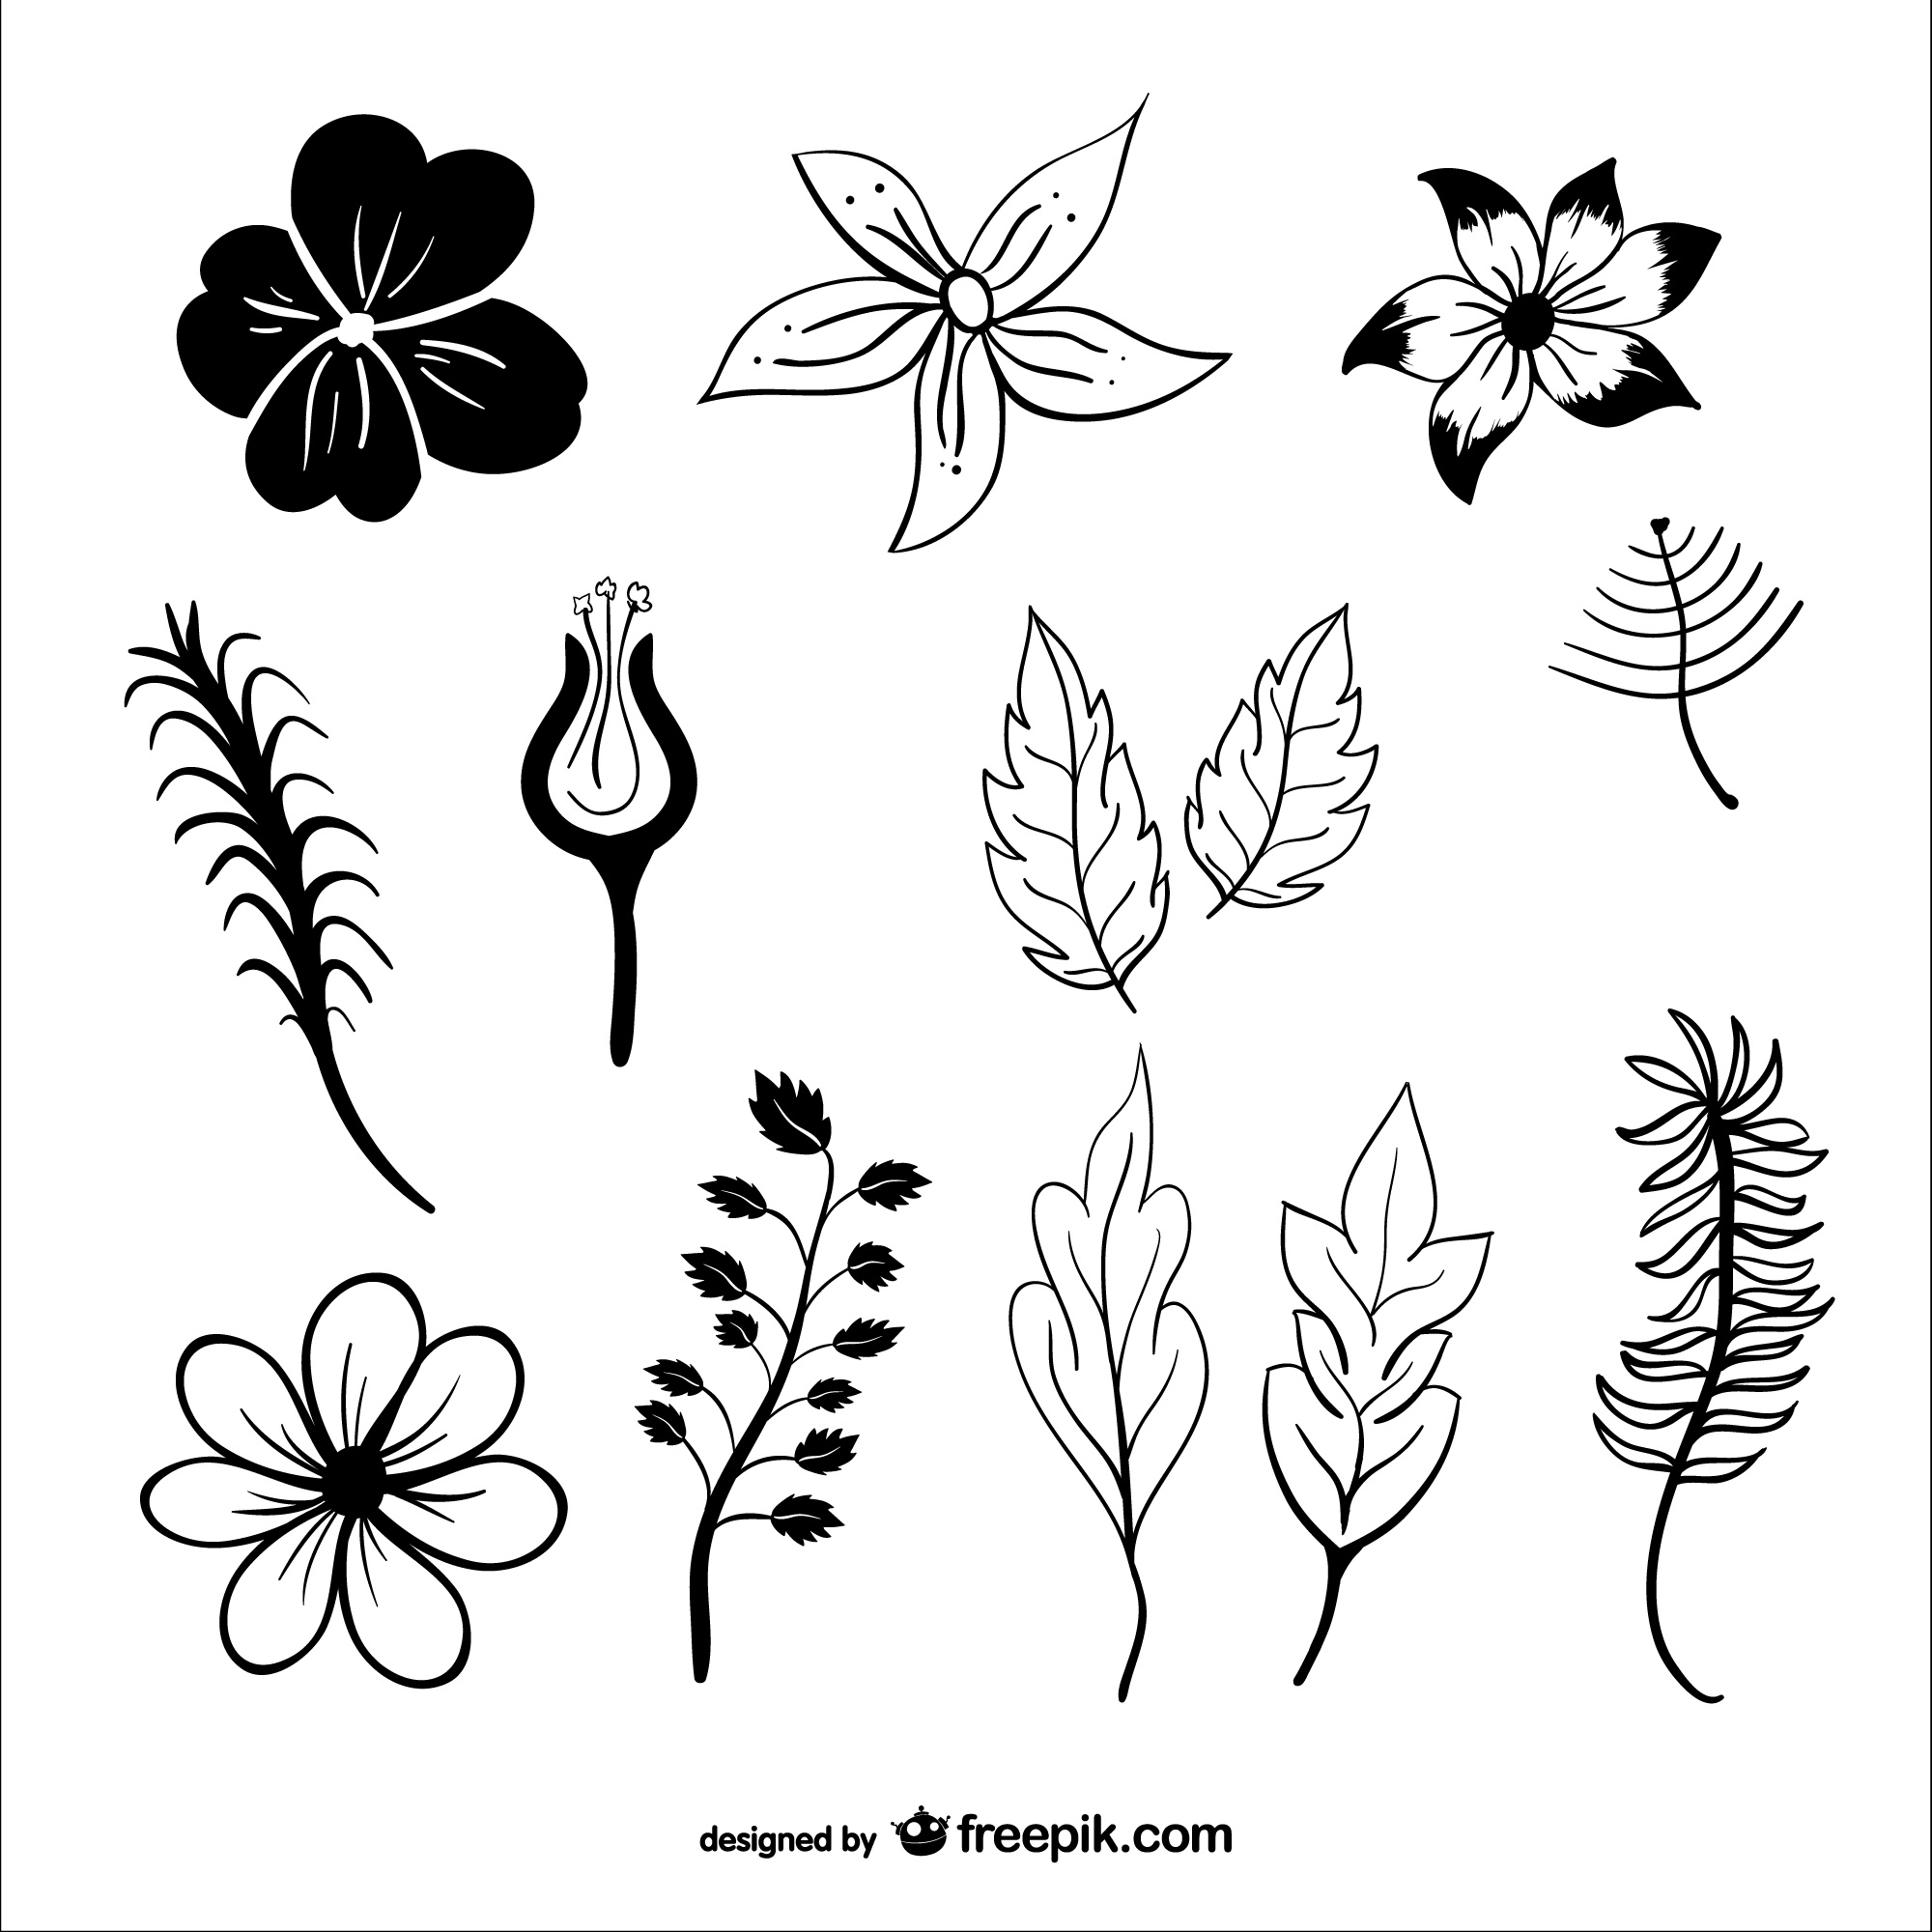 Leaves and flowers vector silhouettes